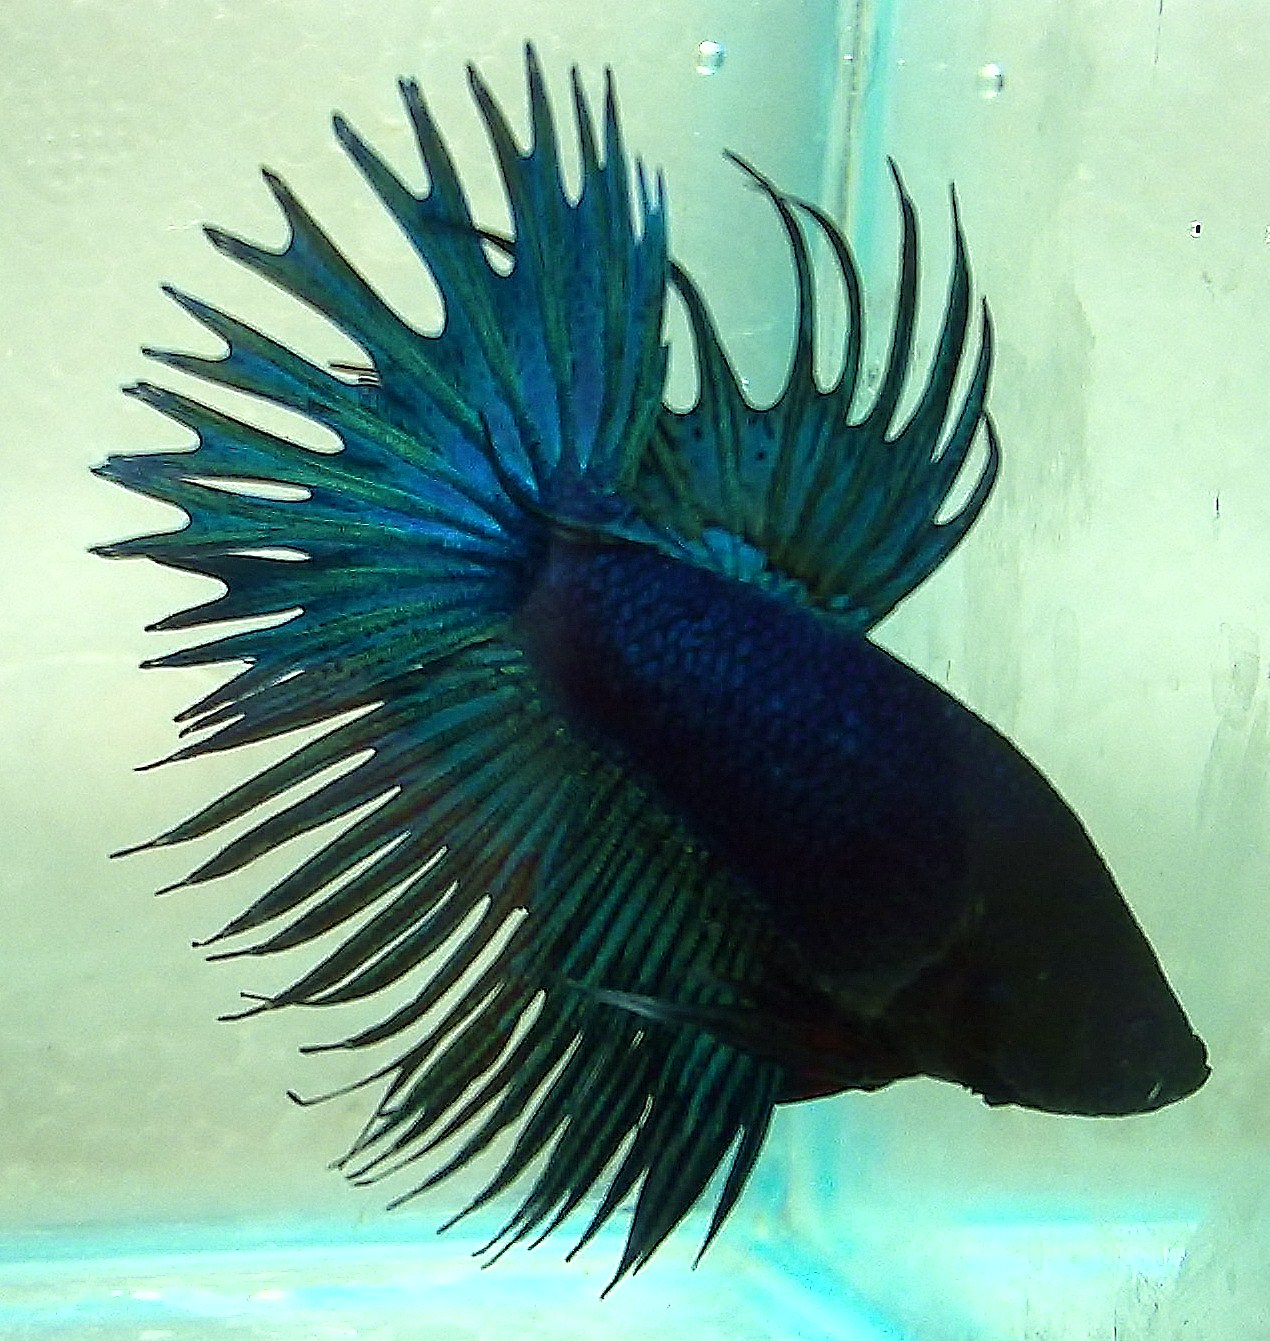 Red and blue crowntail betta